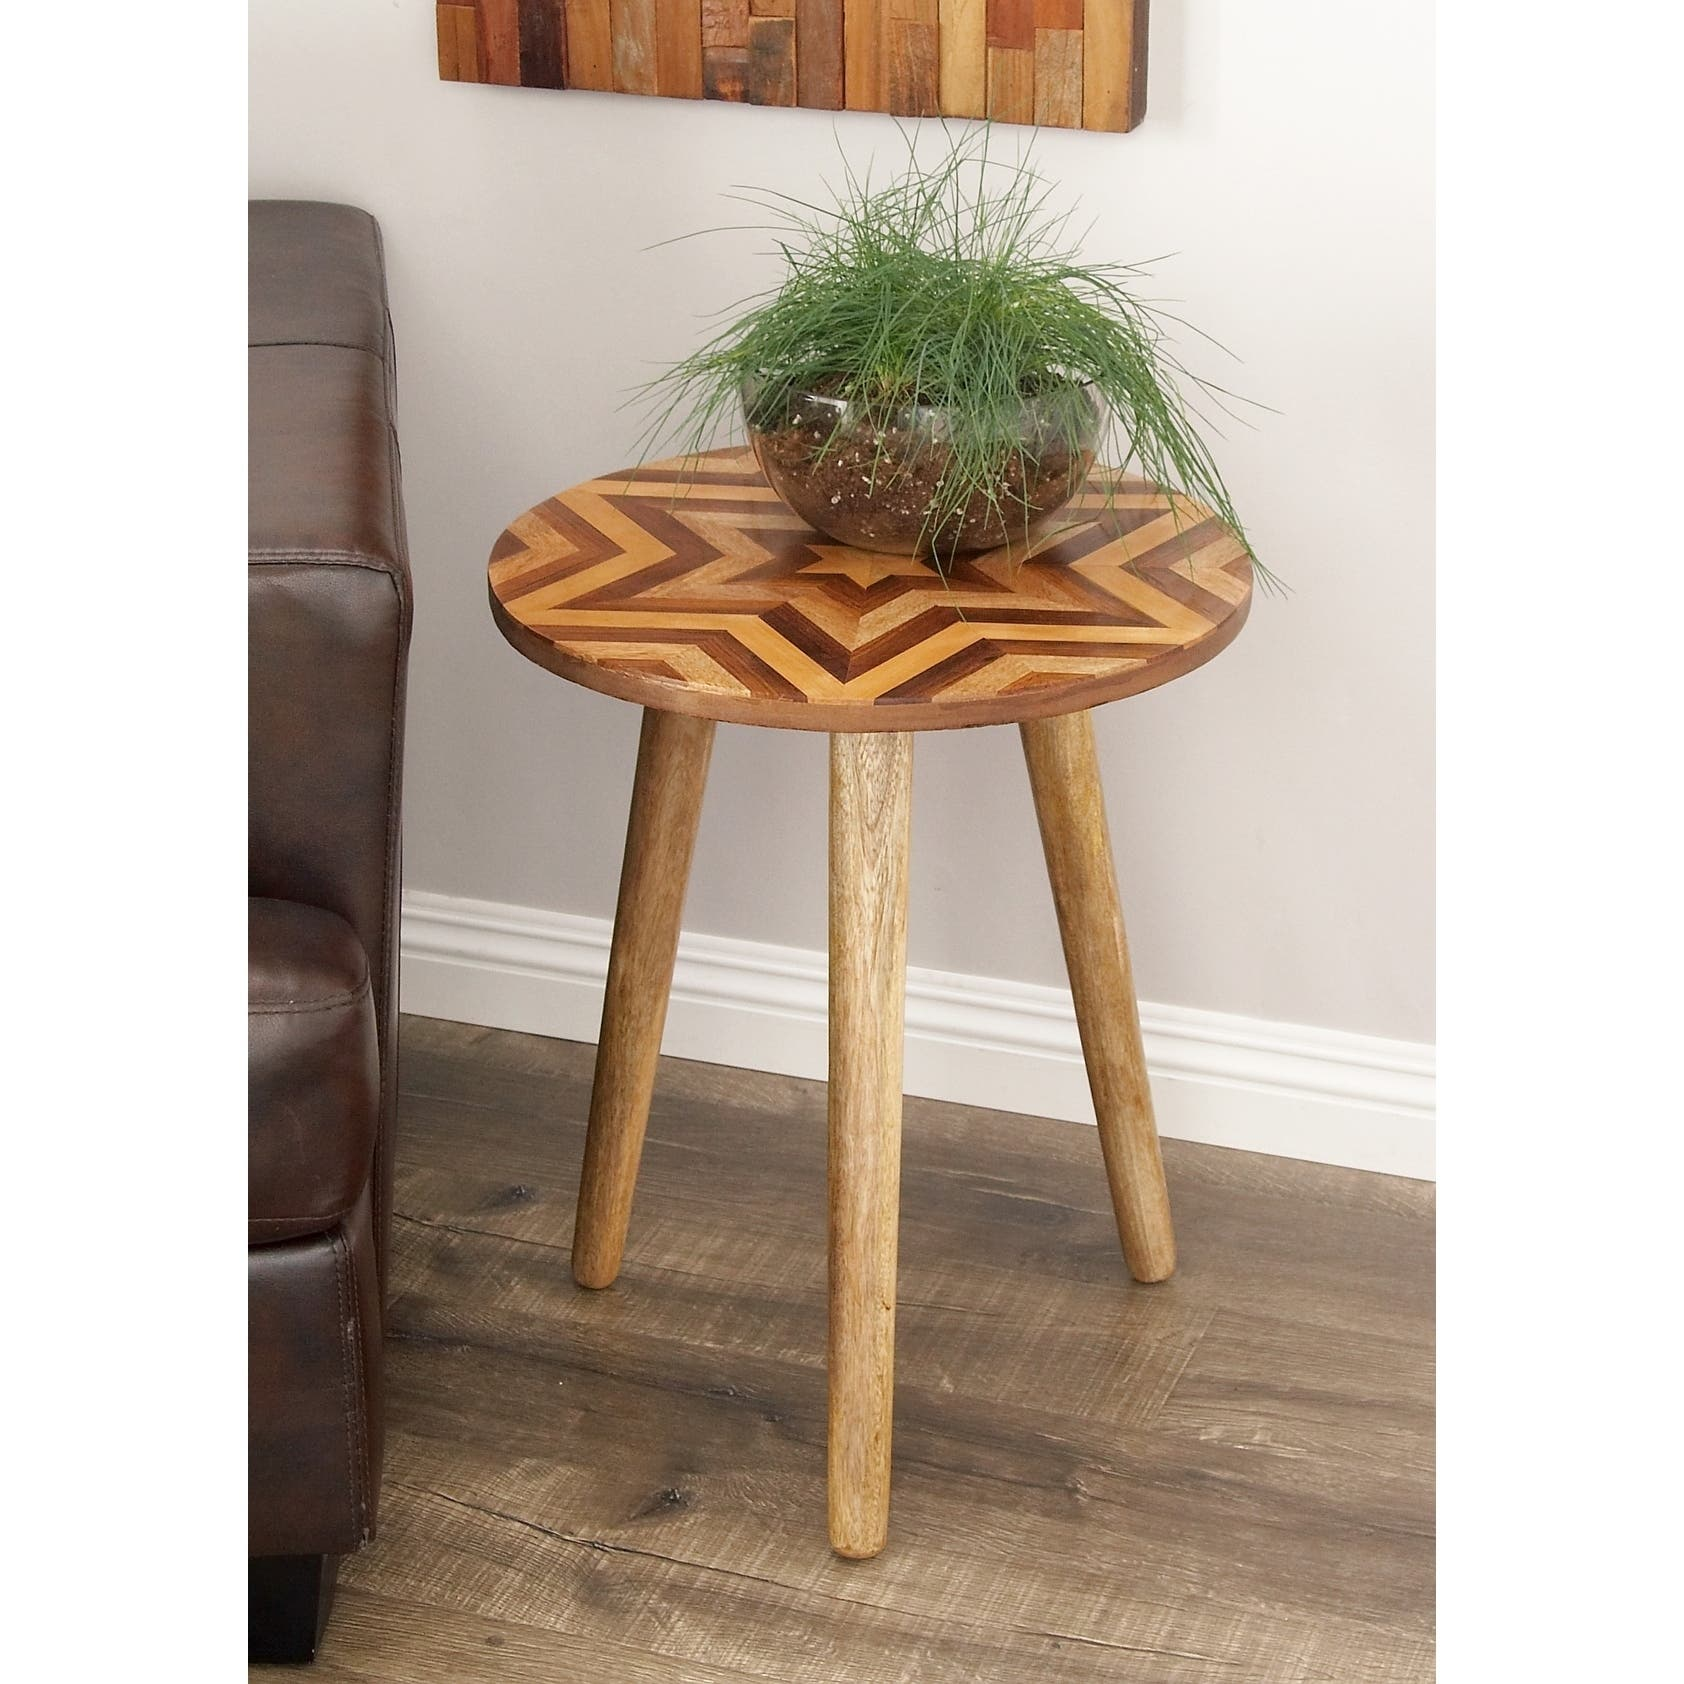 Bar Stools 22 Inches High